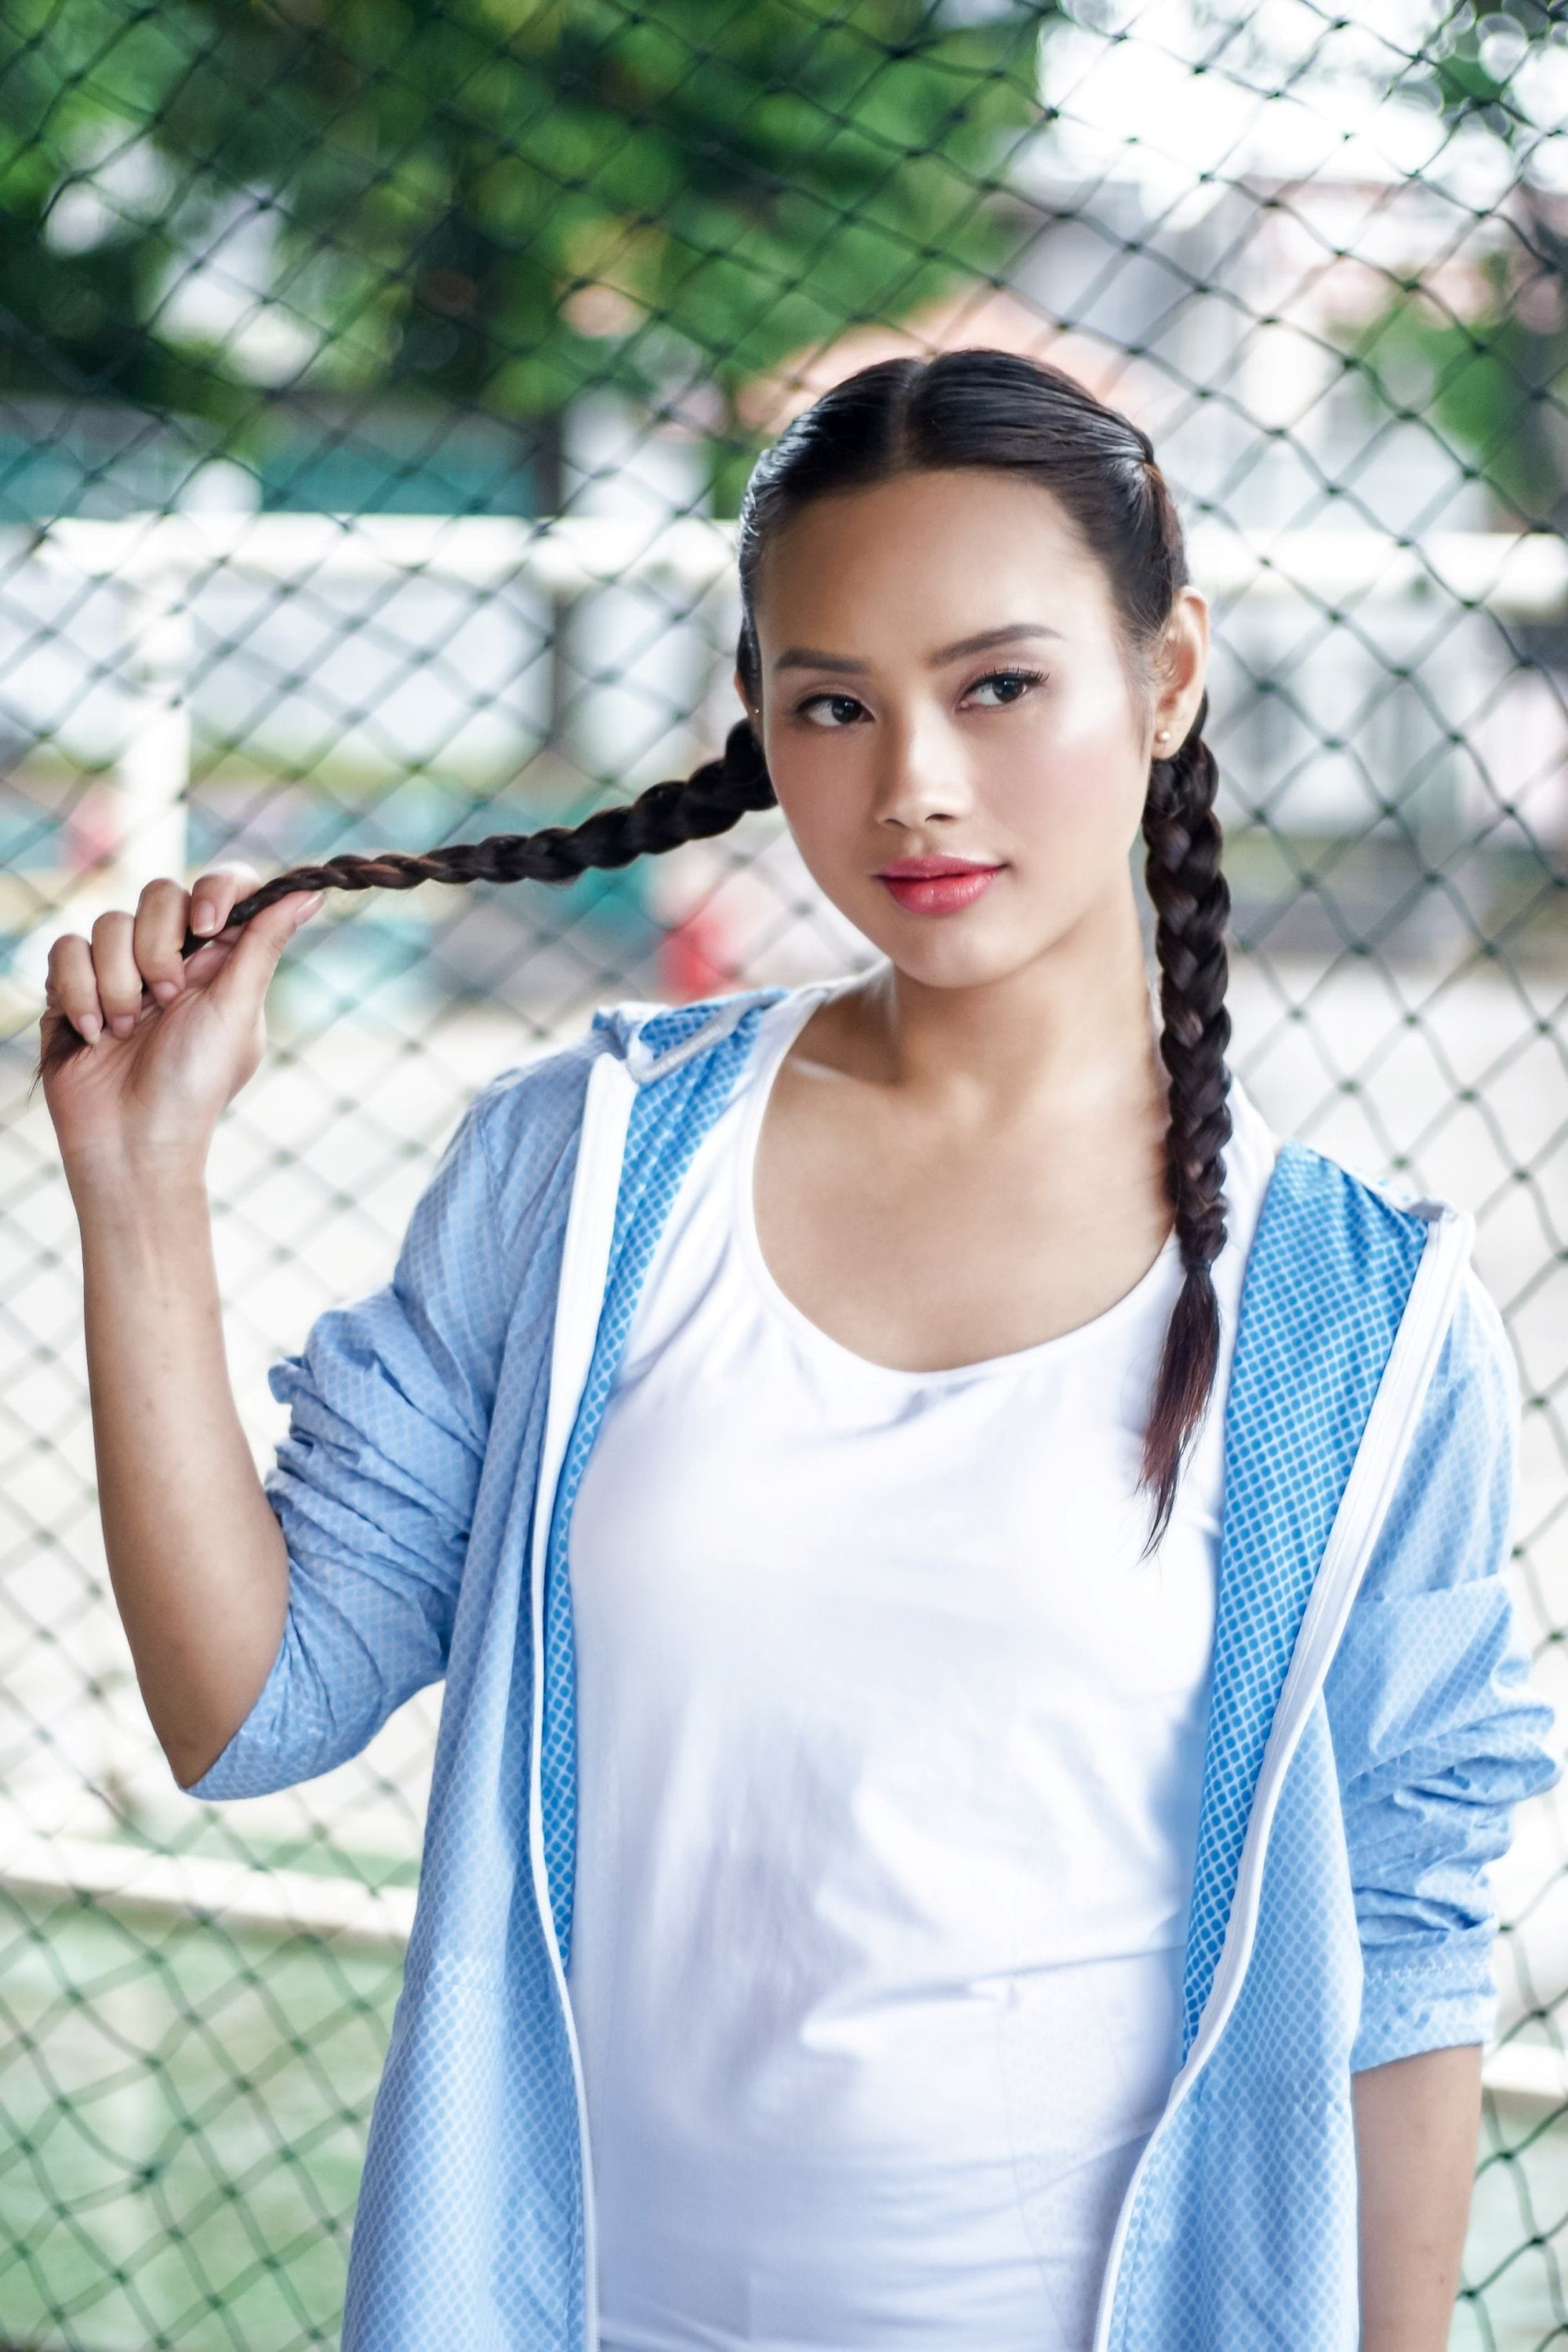 Benefits of aloe vera for the hair: Asian woman with long black hair in boxer braid wearing a sporty outfit outdoors